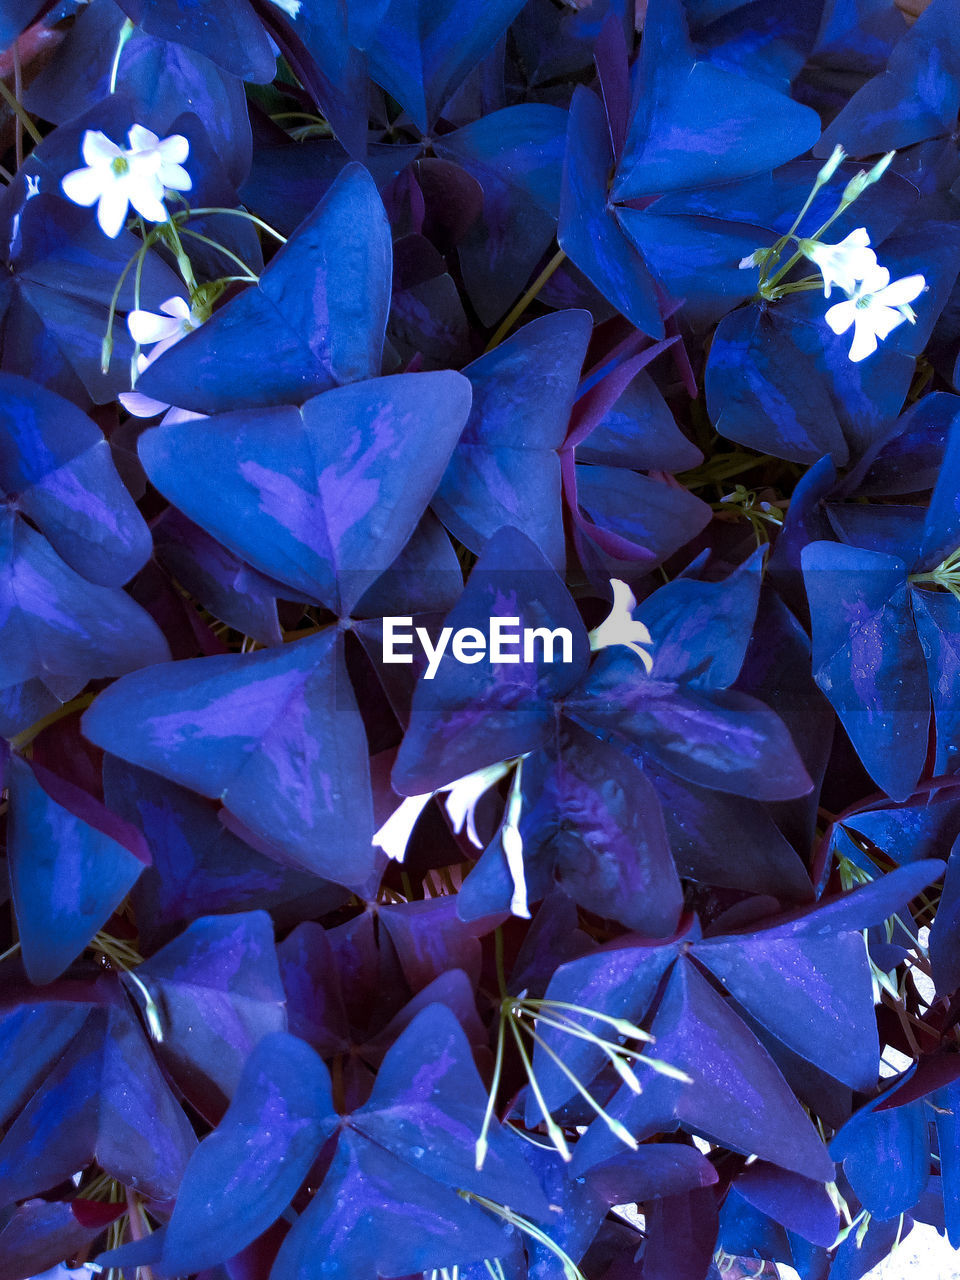 flower, beauty in nature, nature, petal, fragility, growth, plant, no people, outdoors, purple, day, full frame, close-up, leaf, blue, freshness, bougainvillea, flower head